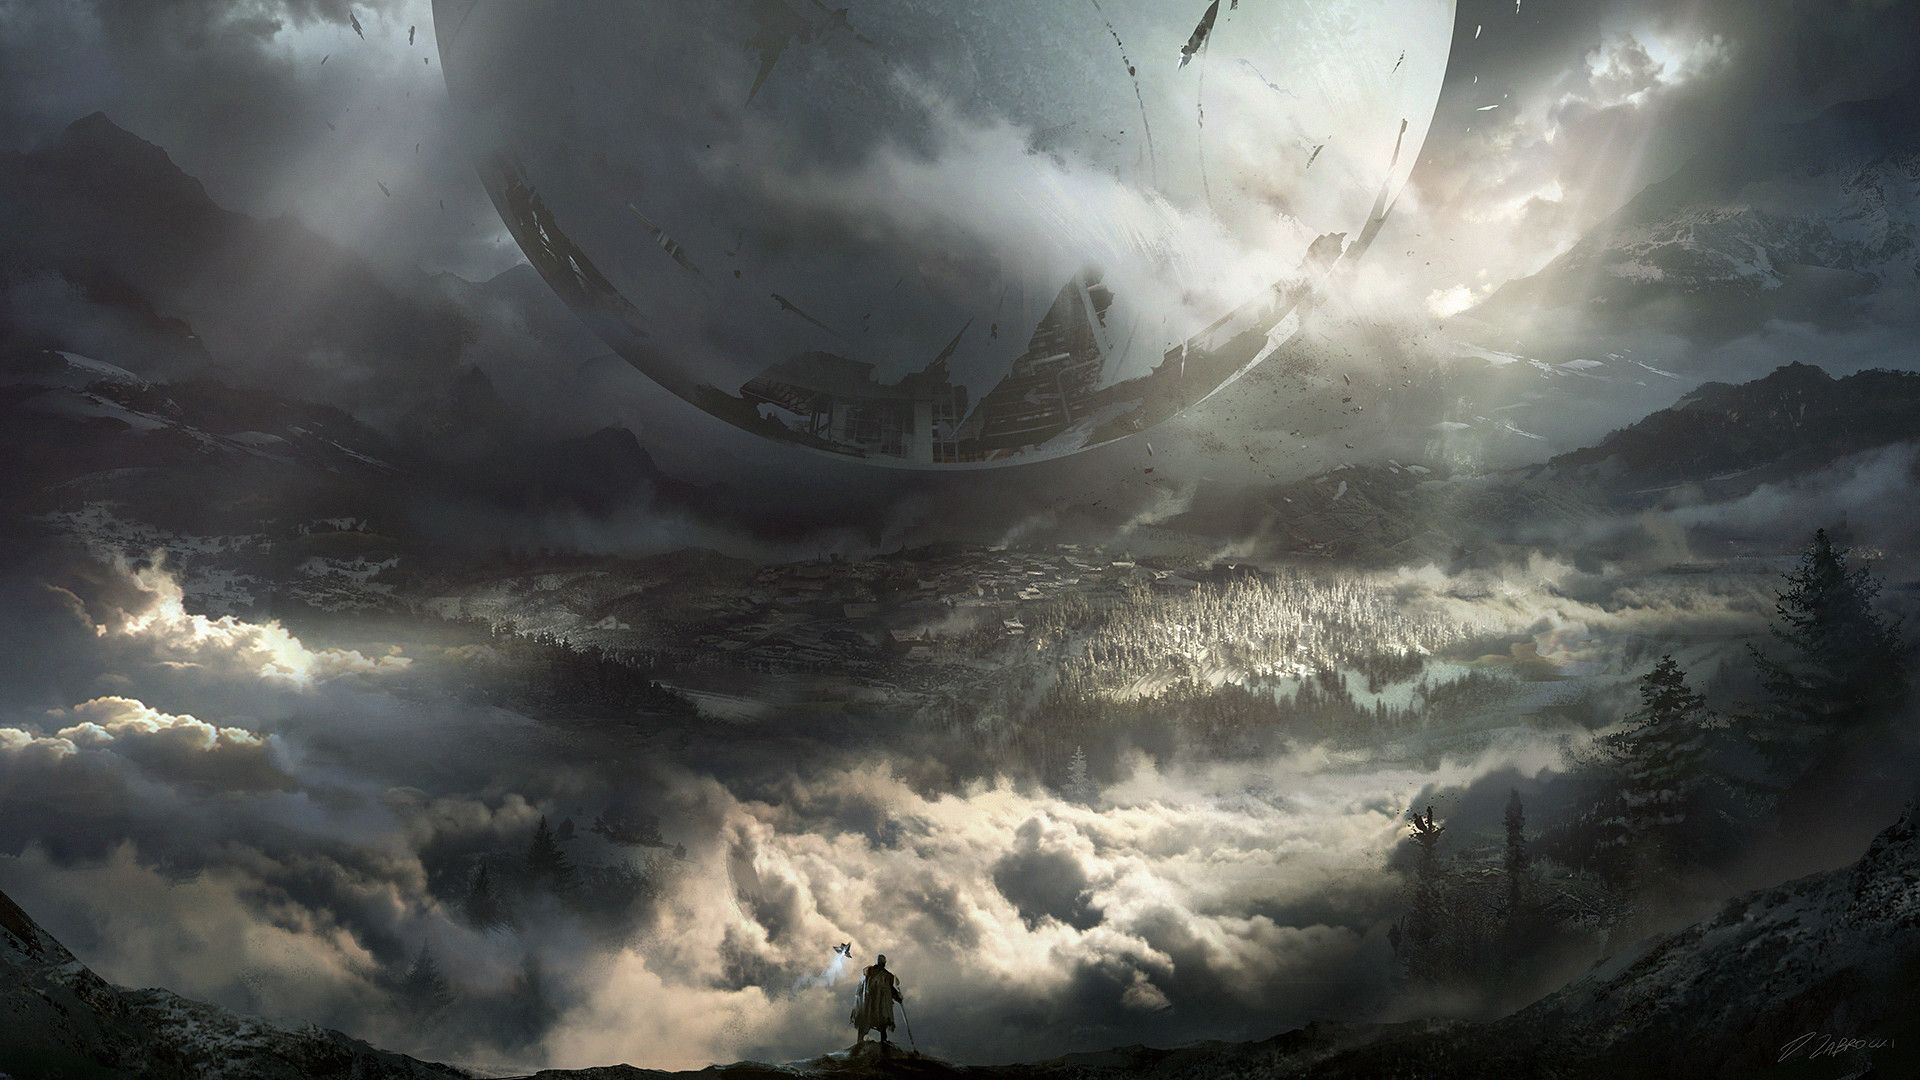 Some Of My Favorite Destiny 2 Wallpapers From The Recent Concept Art Release And The E3 Conference Album O Destiny Wallpaper Hd Concept Art World Concept Art